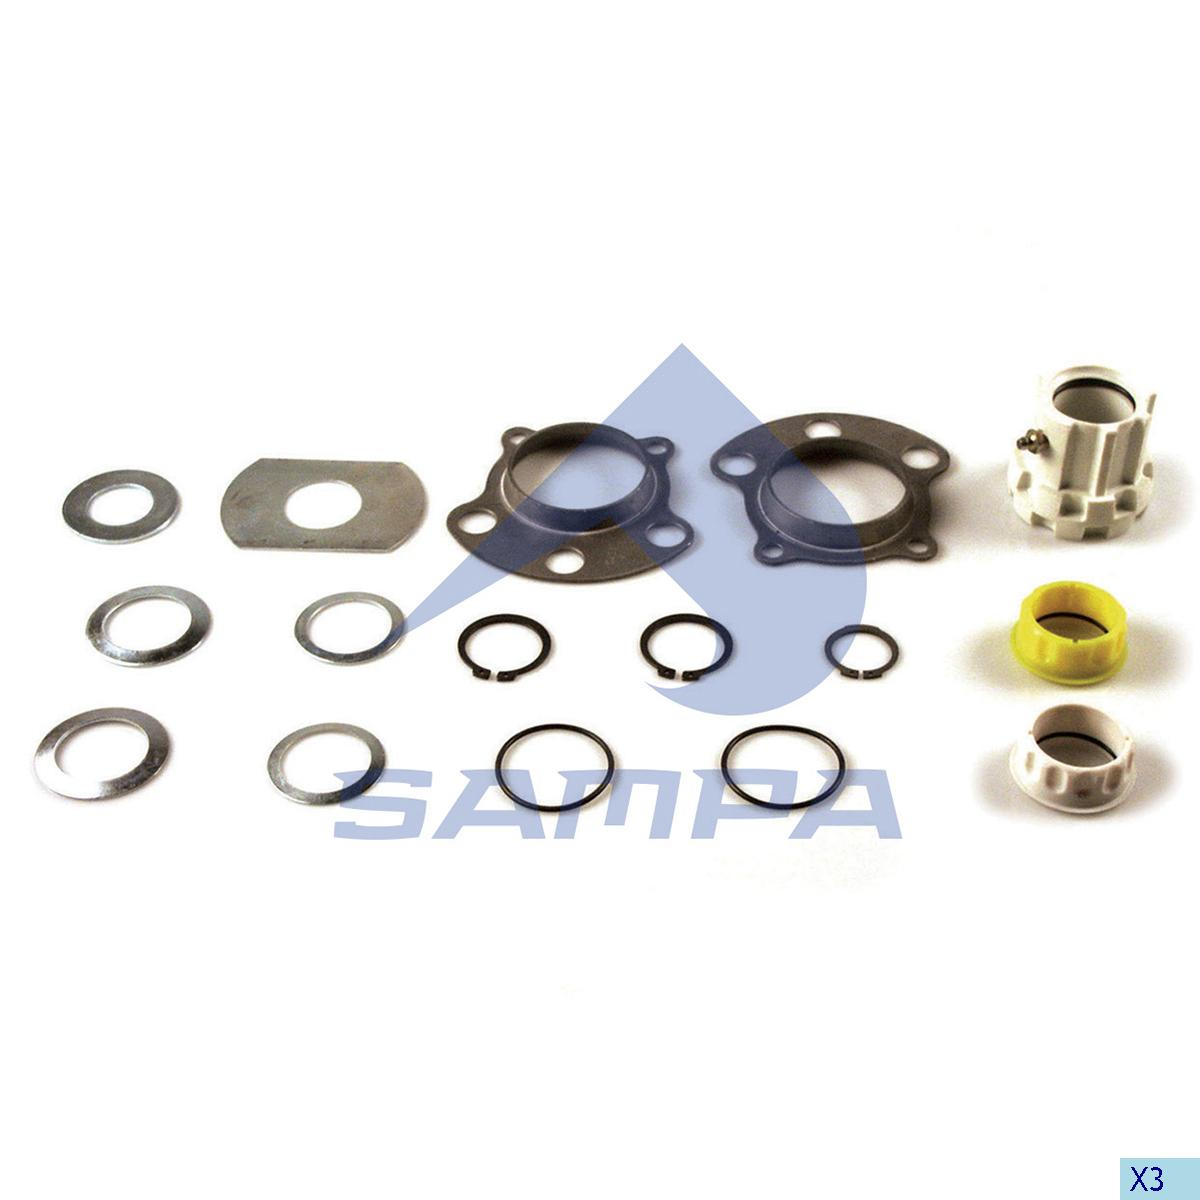 Repair Kit, Brake Cam Shaft, Ror-Meritor, Brake